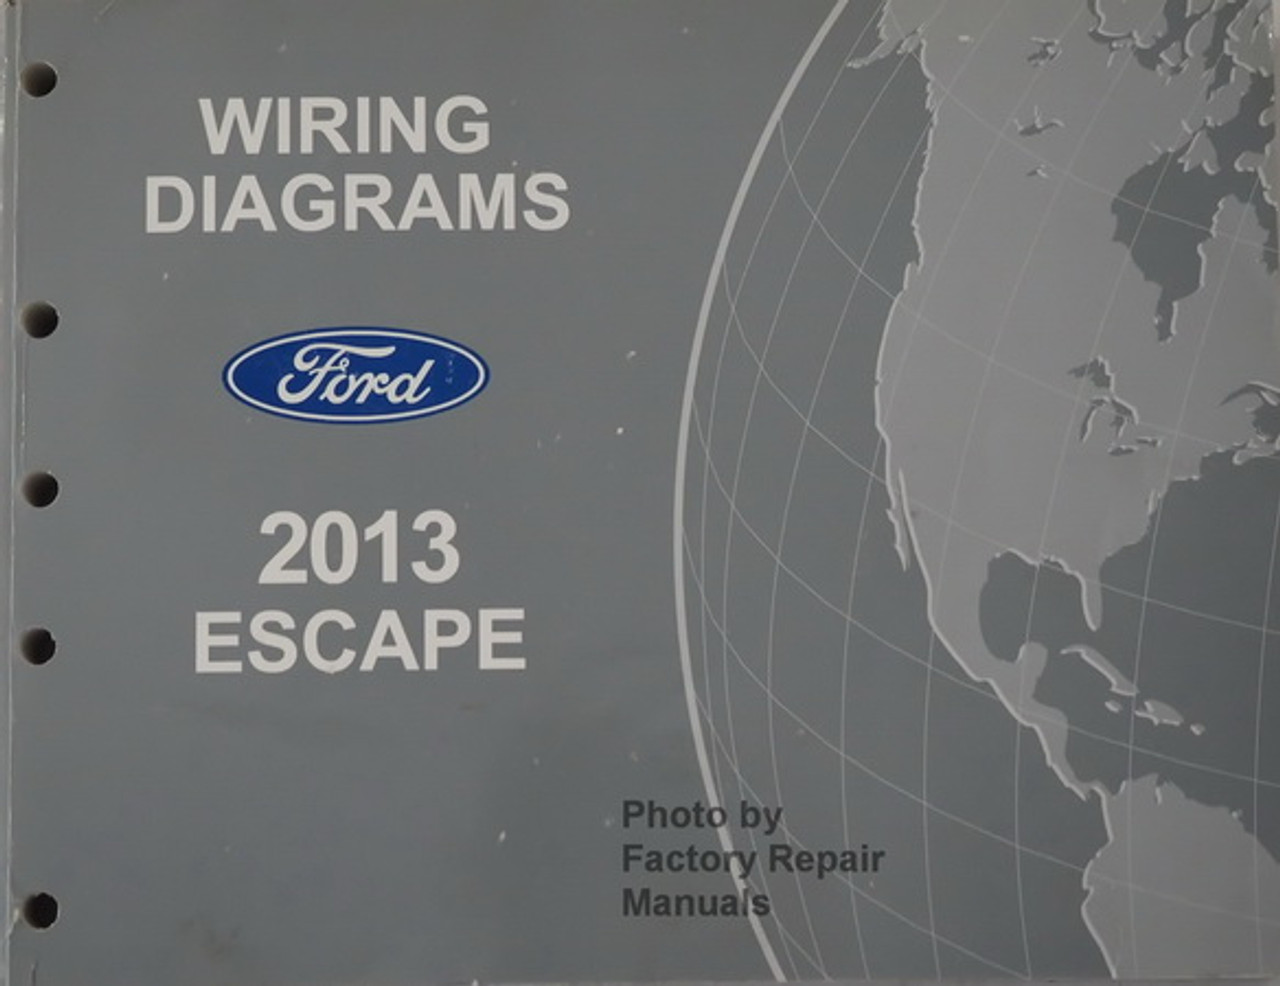 2013 Ford Escape Electrical Wiring Diagrams Original Manual